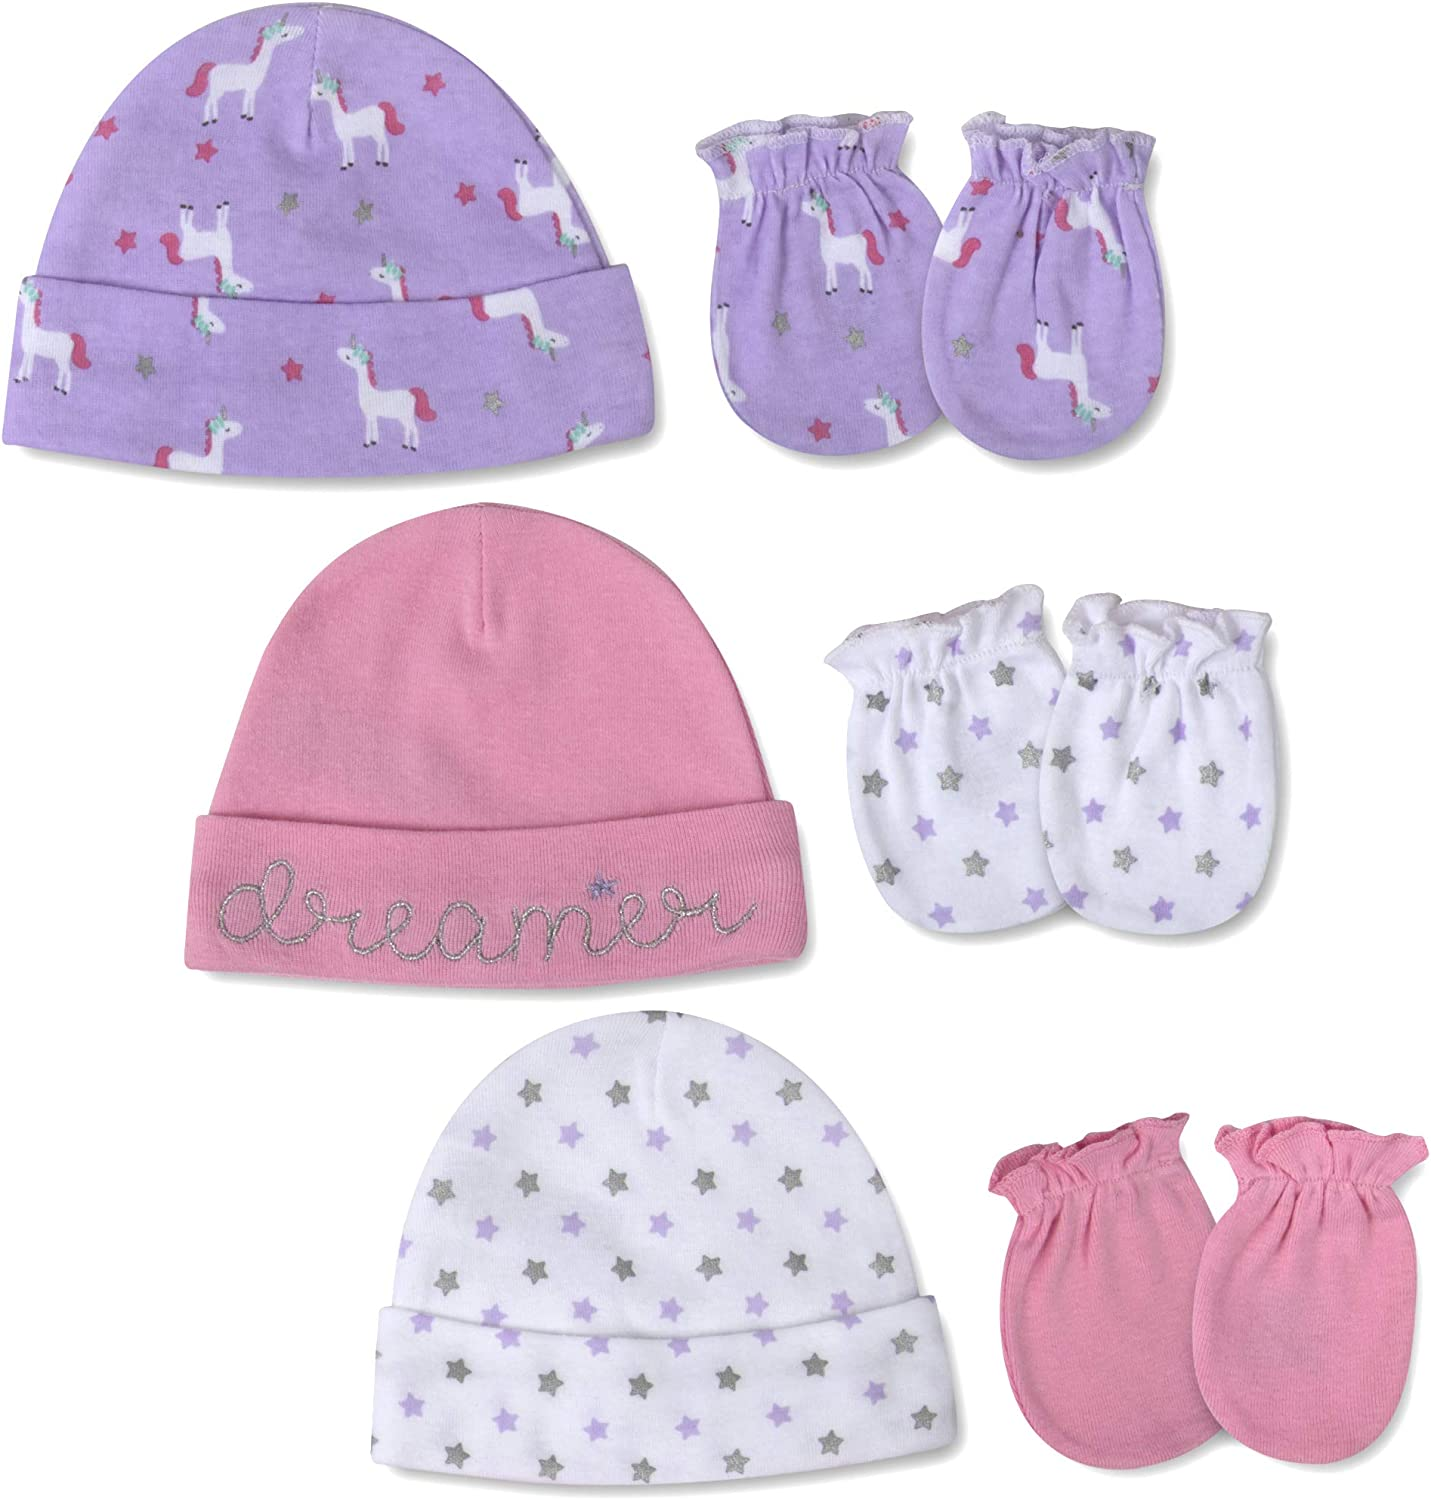 Baby Hat and Mitten Set 0-6 Months - Caps and Anti Scratch Mittens Set for Infants, Newborn Baby Boy, Baby Girl